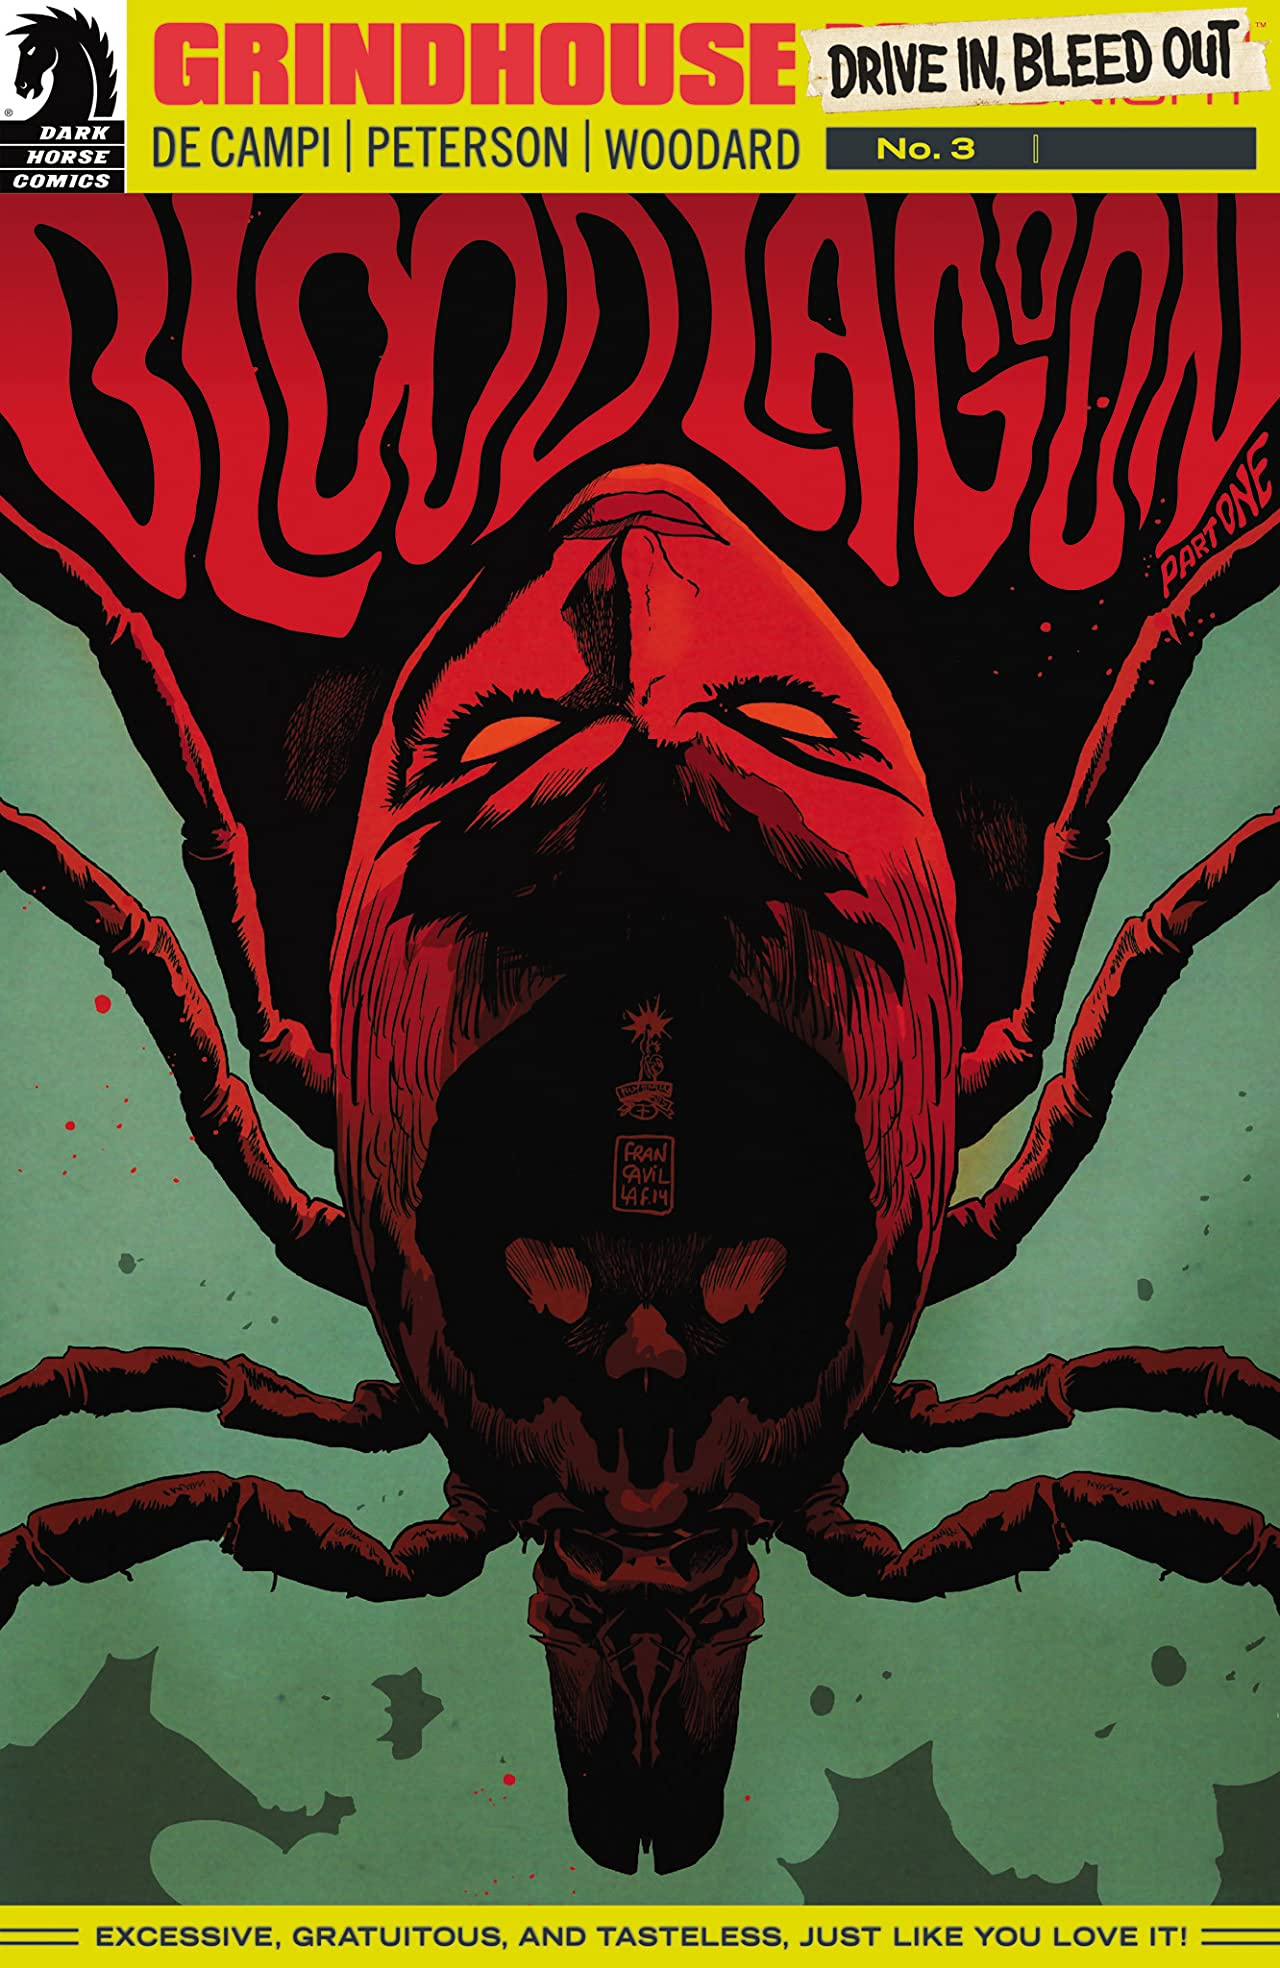 Grindhouse: Drive In, Bleed Out #3